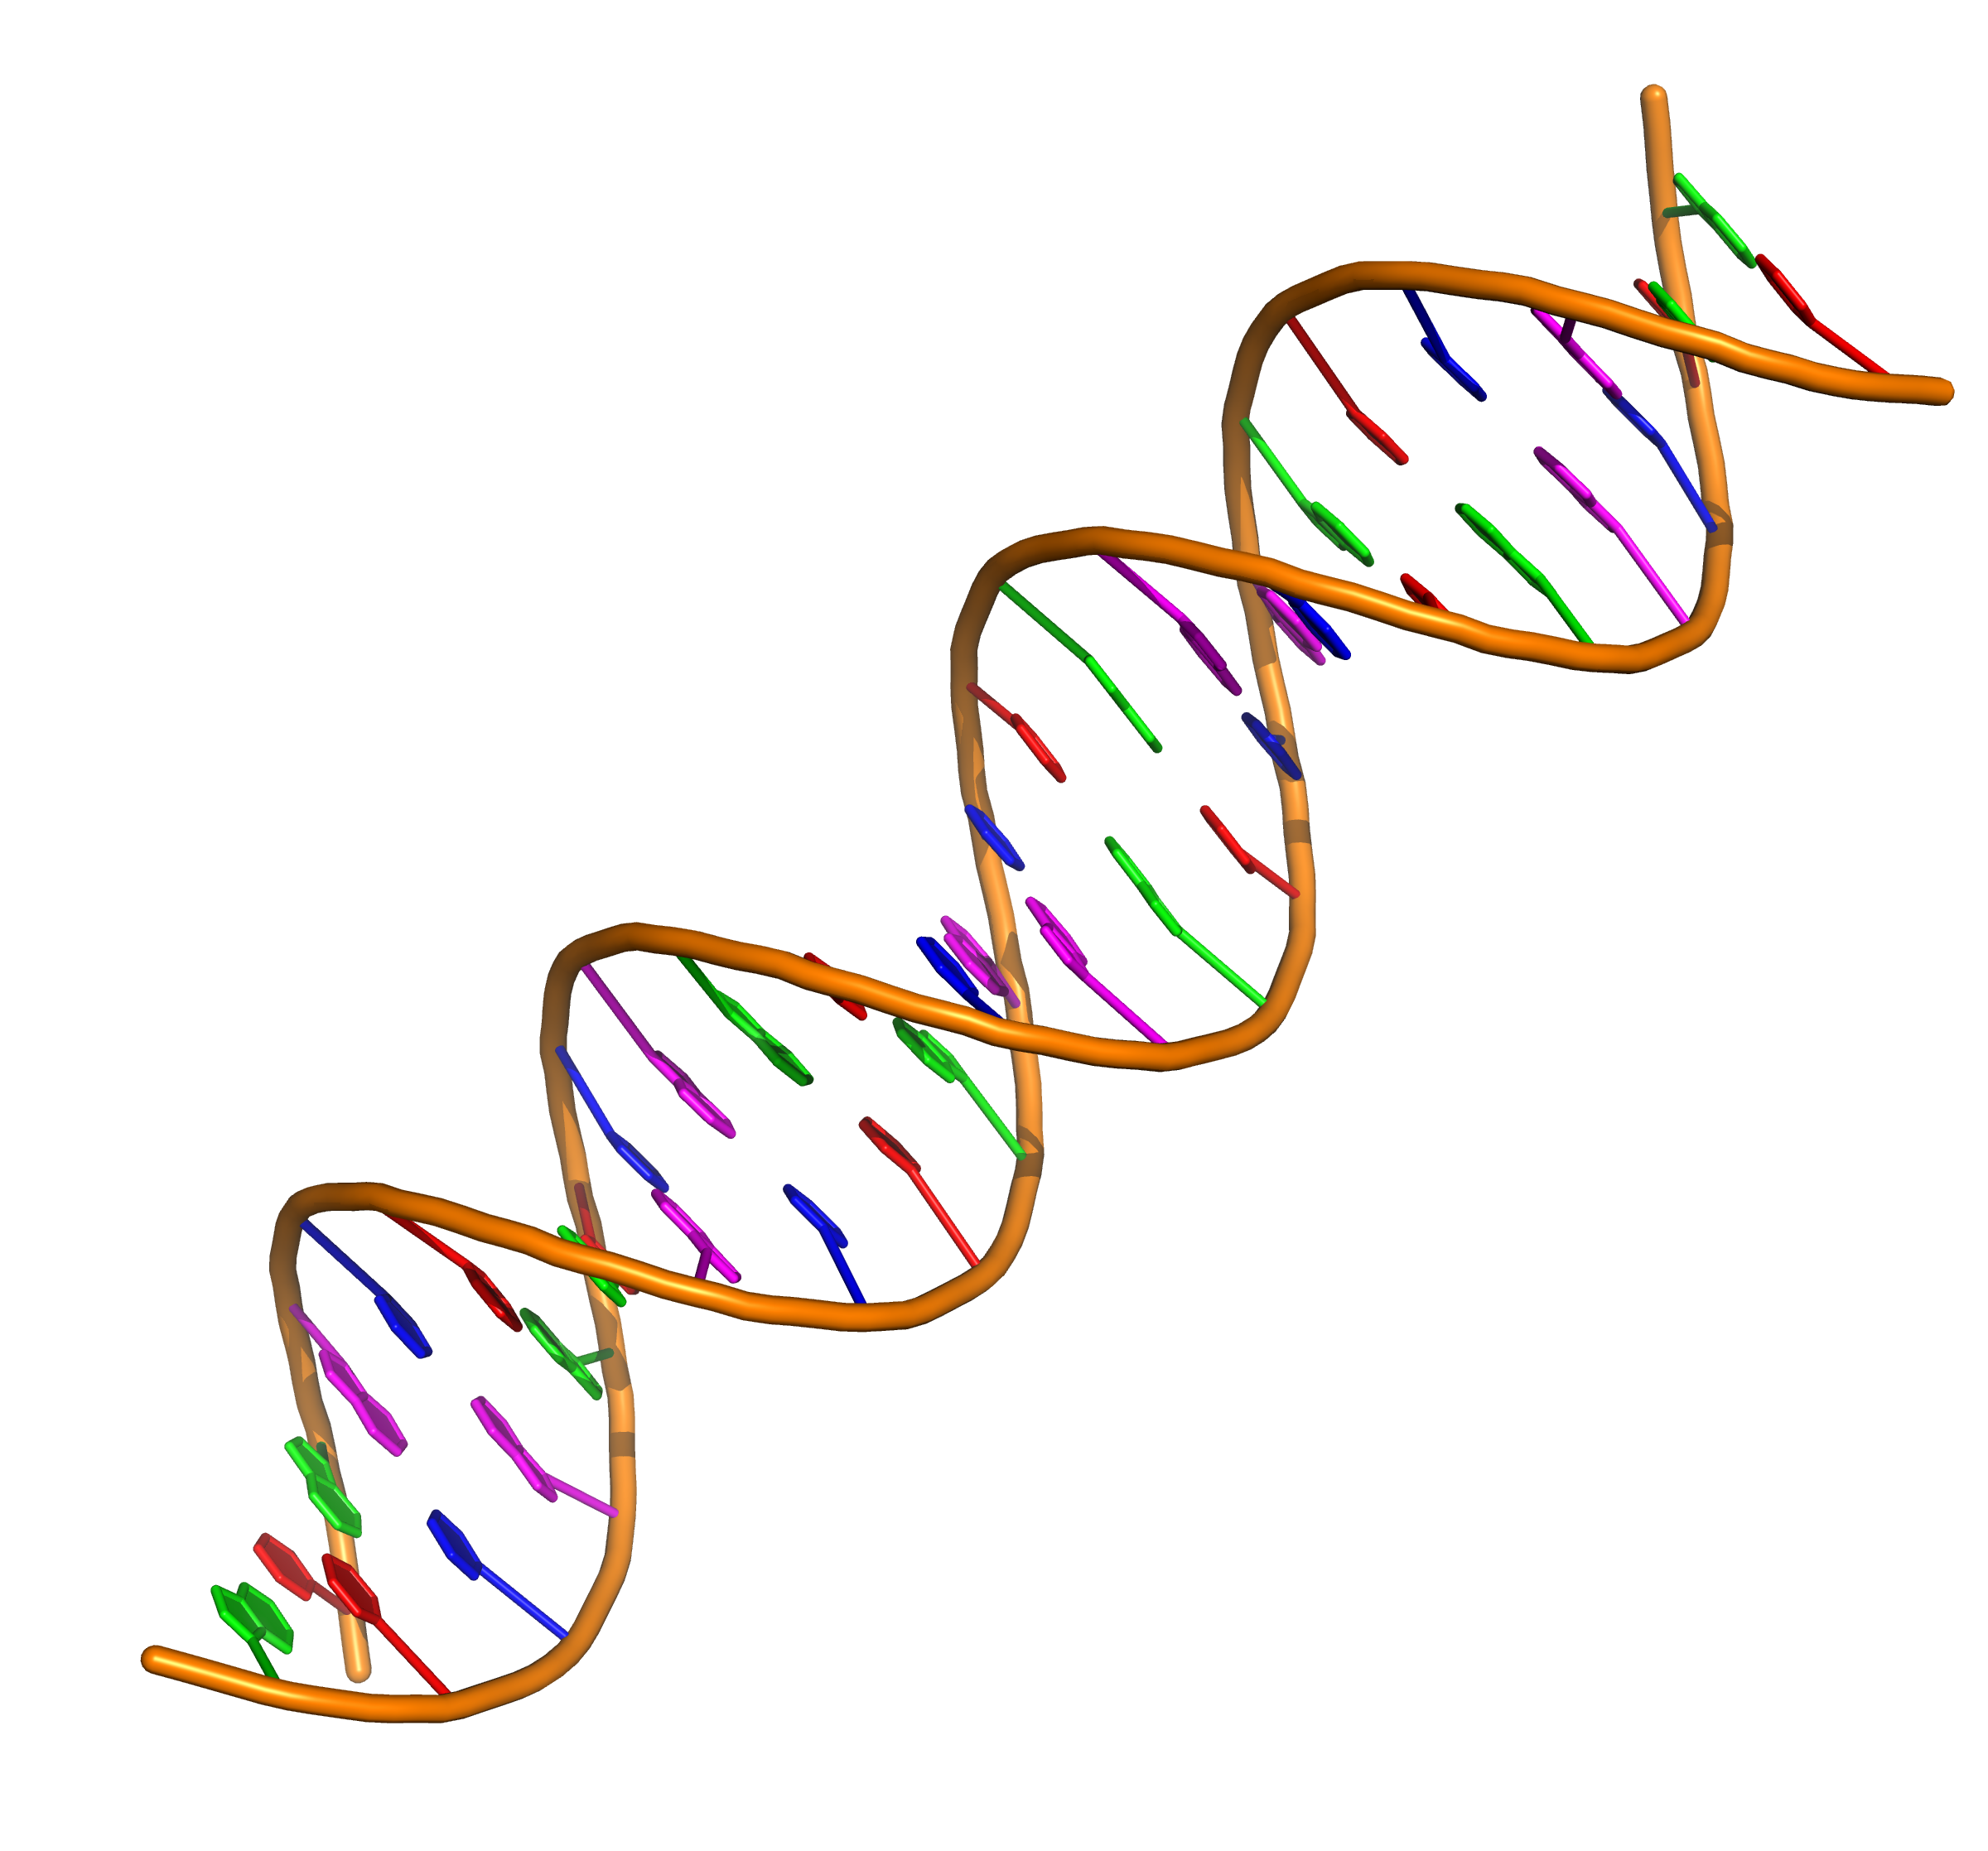 2 dna strands clipart svg black and white stock Nucleic acid double helix - Wikipedia svg black and white stock